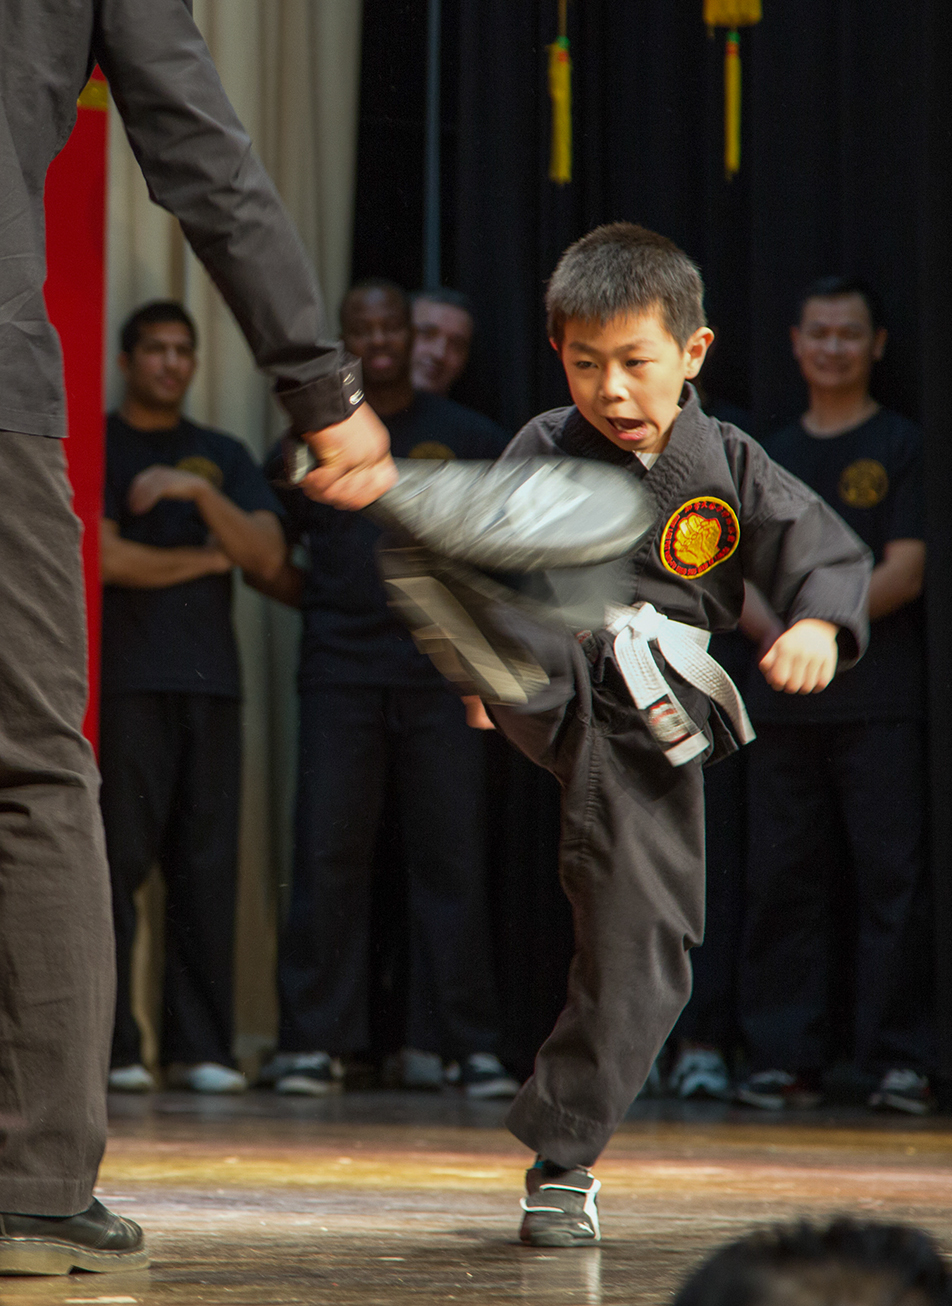 Karate Master: The youngest martial artist of the crew shows off his skills during the Chinese New Year celebrations. (Photo by Sarah Collins/The Press)